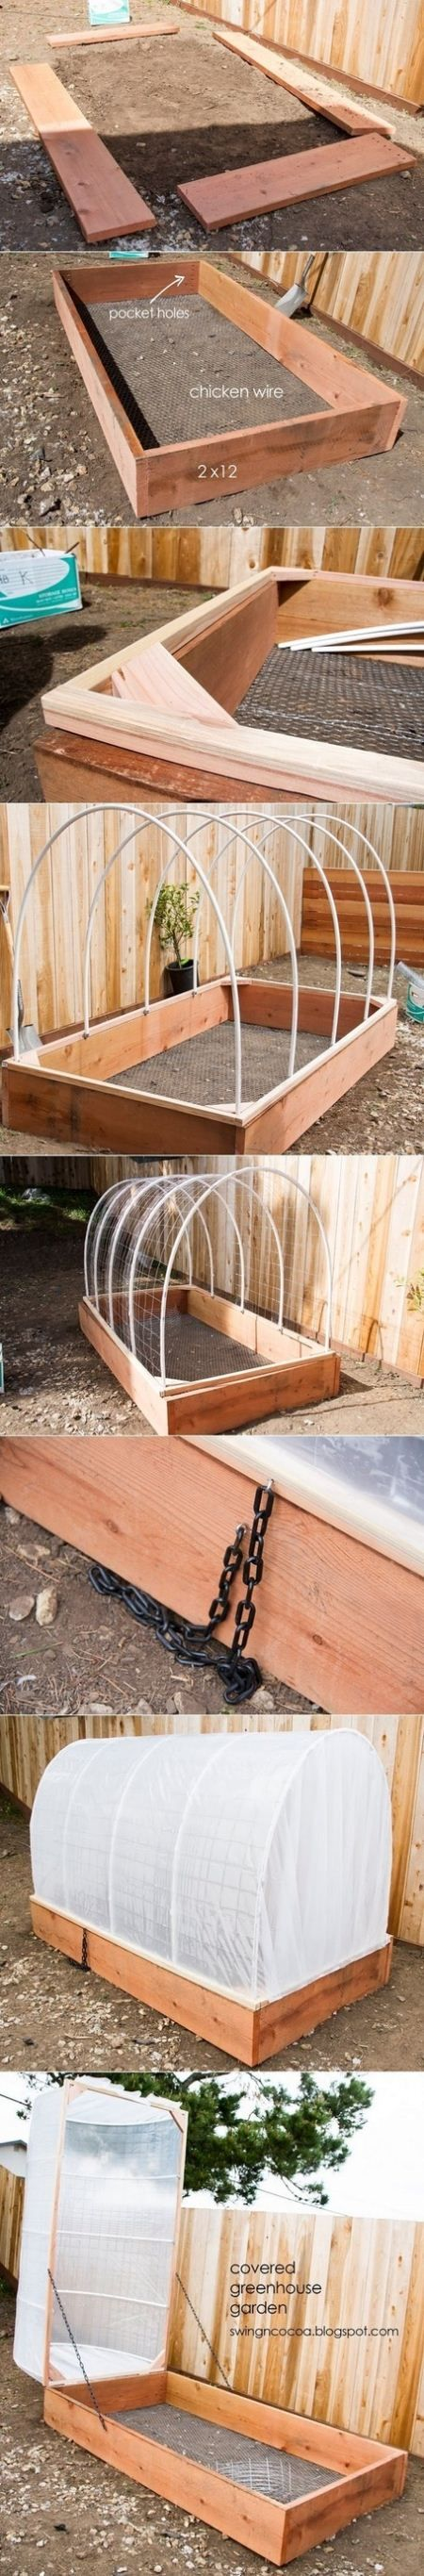 covered greenhouse, diy, gardening,